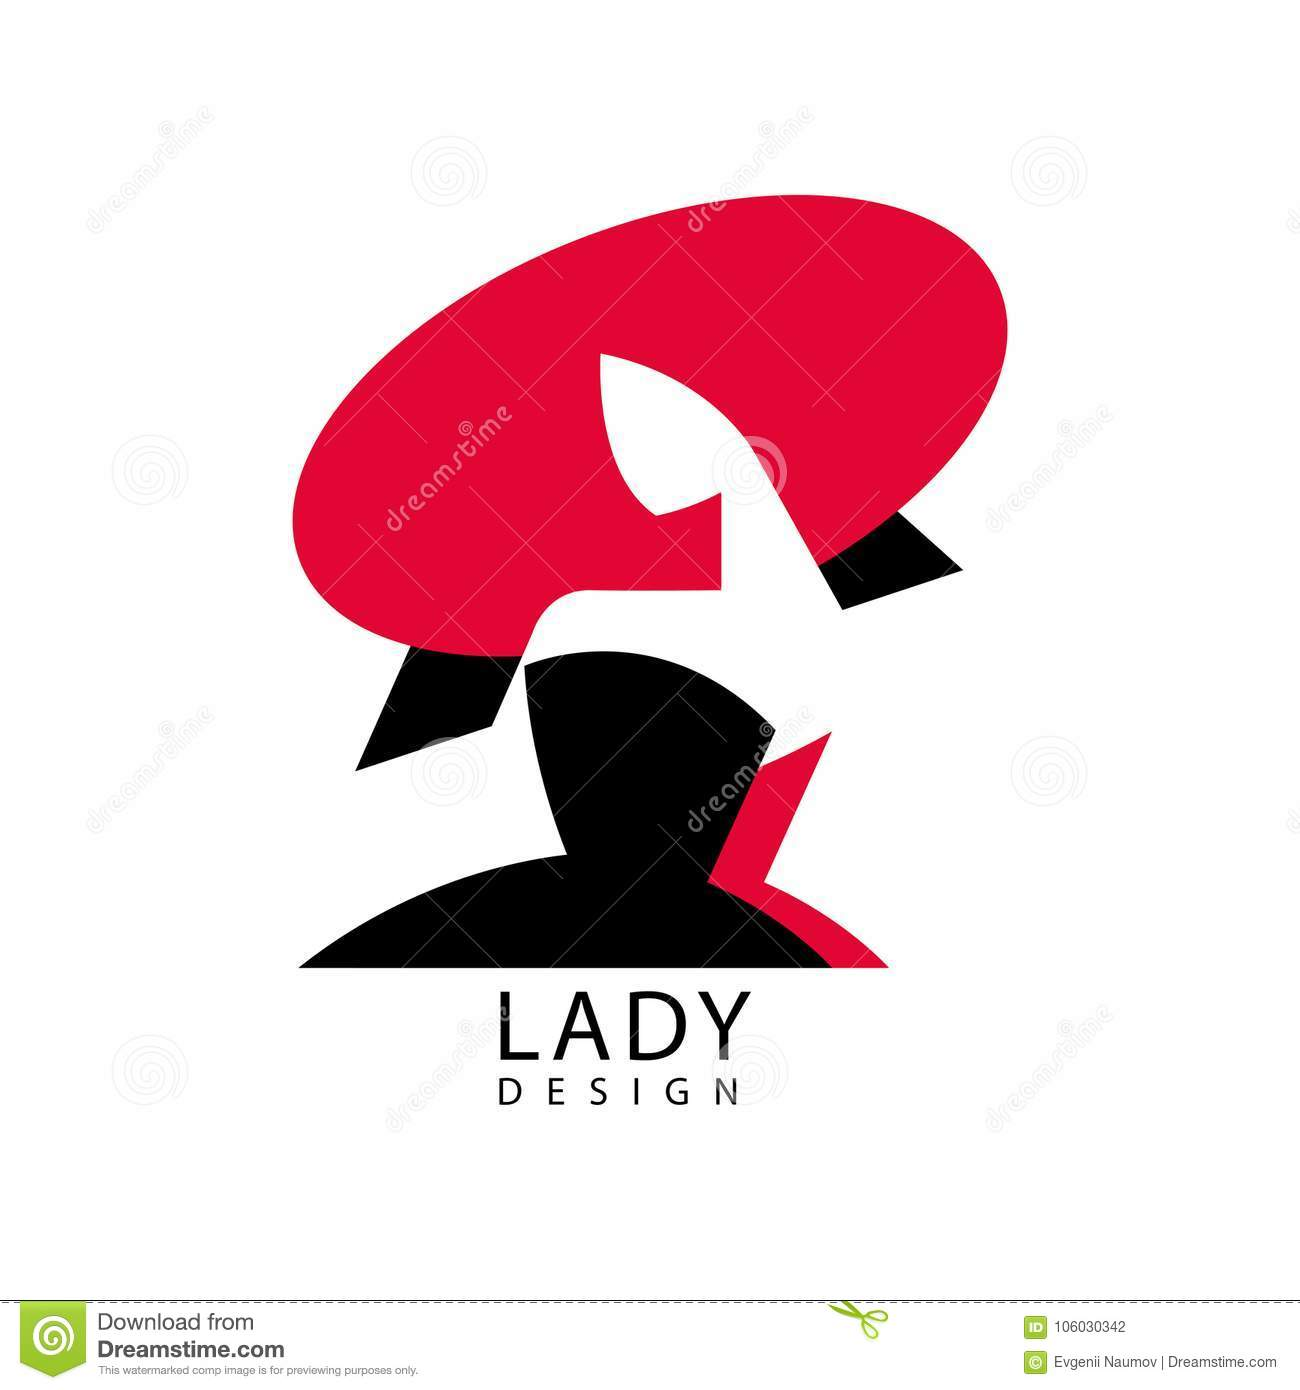 Lady Design Logo, Red And Black Fashion And Beauty Emblem